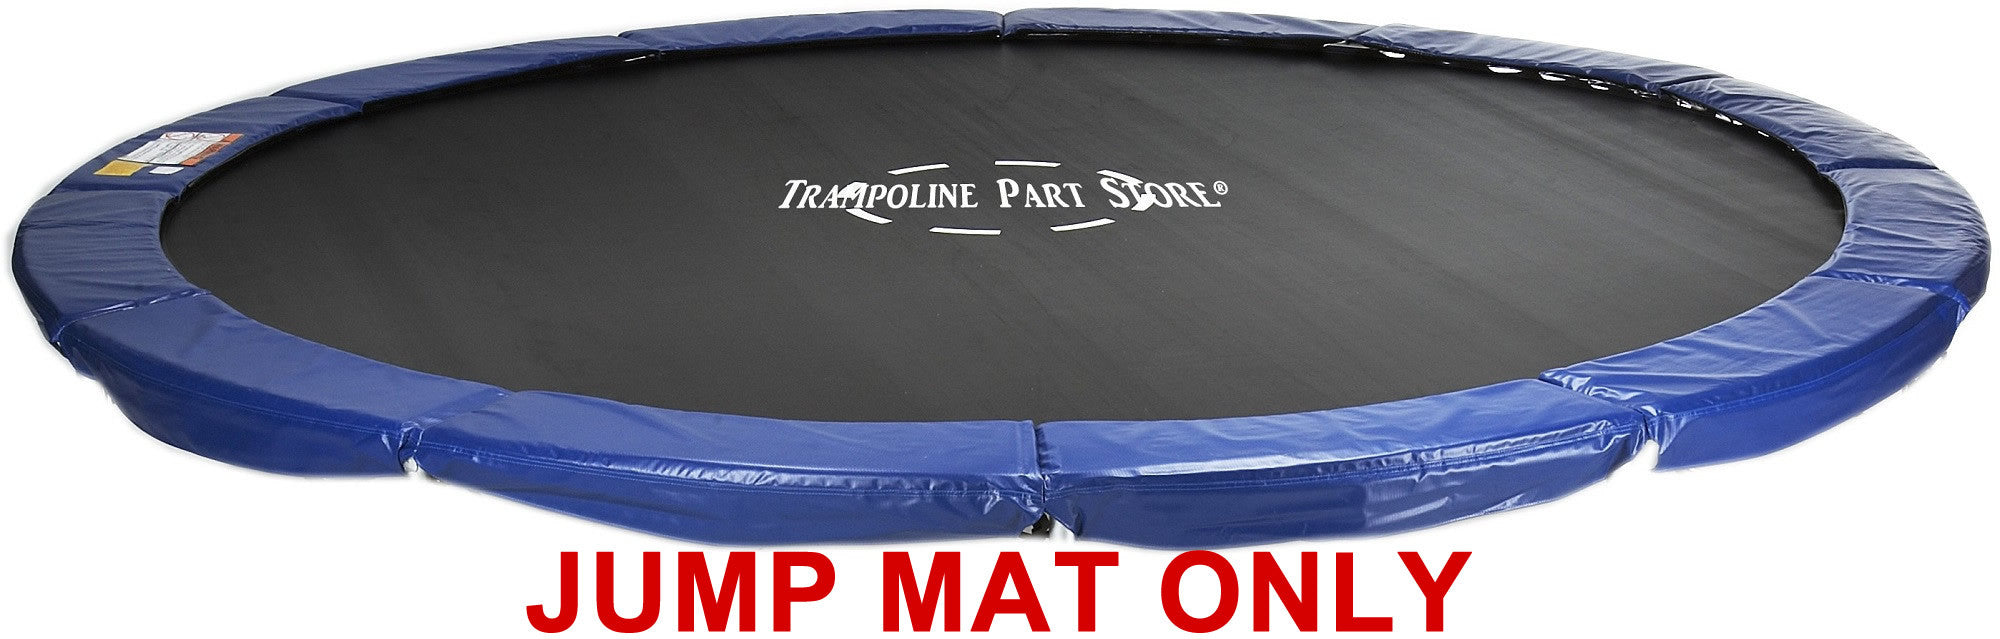 12' with 72-Vrings Trampoline Replacement Jumping Mat